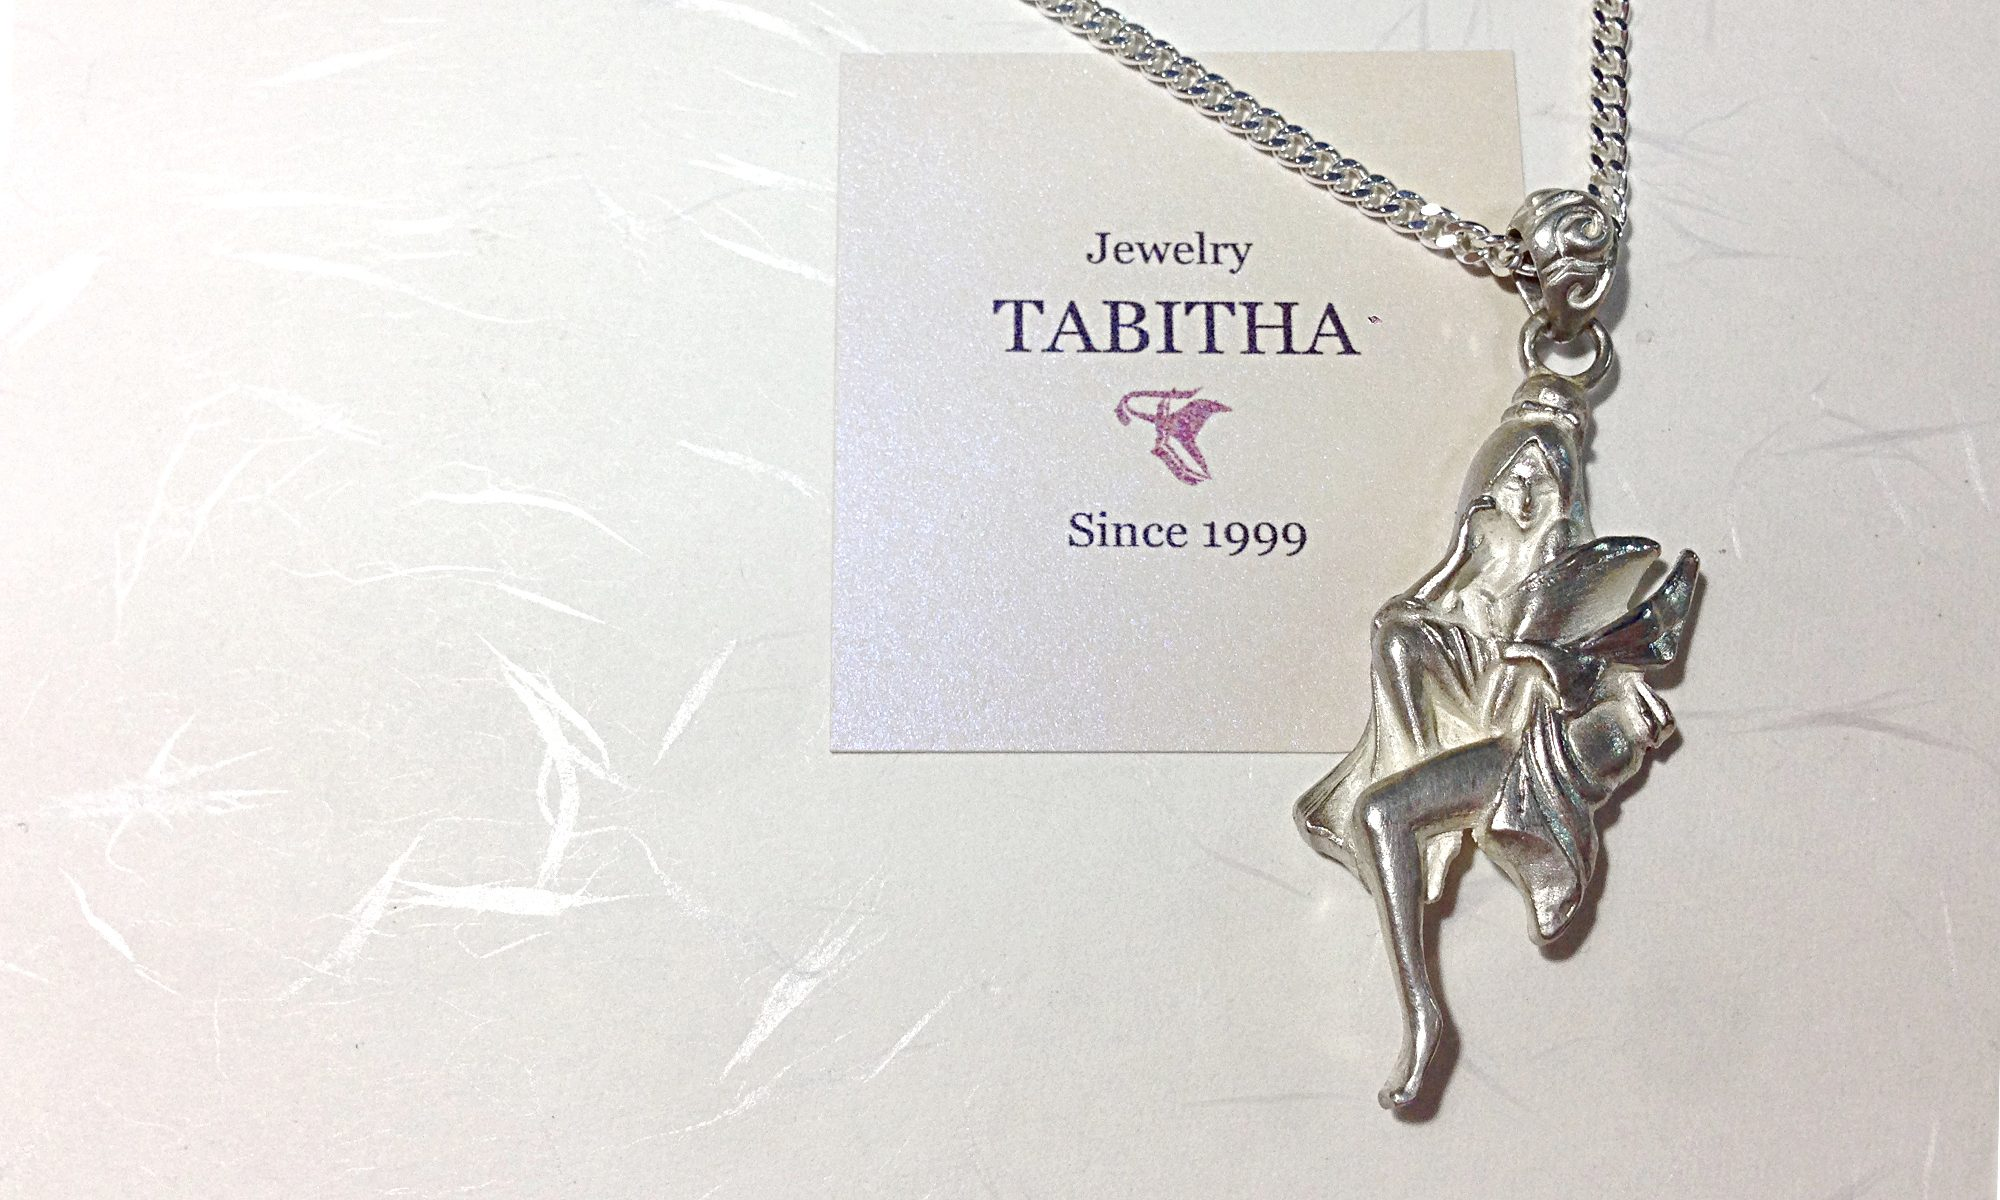 Jewelry TABITHA